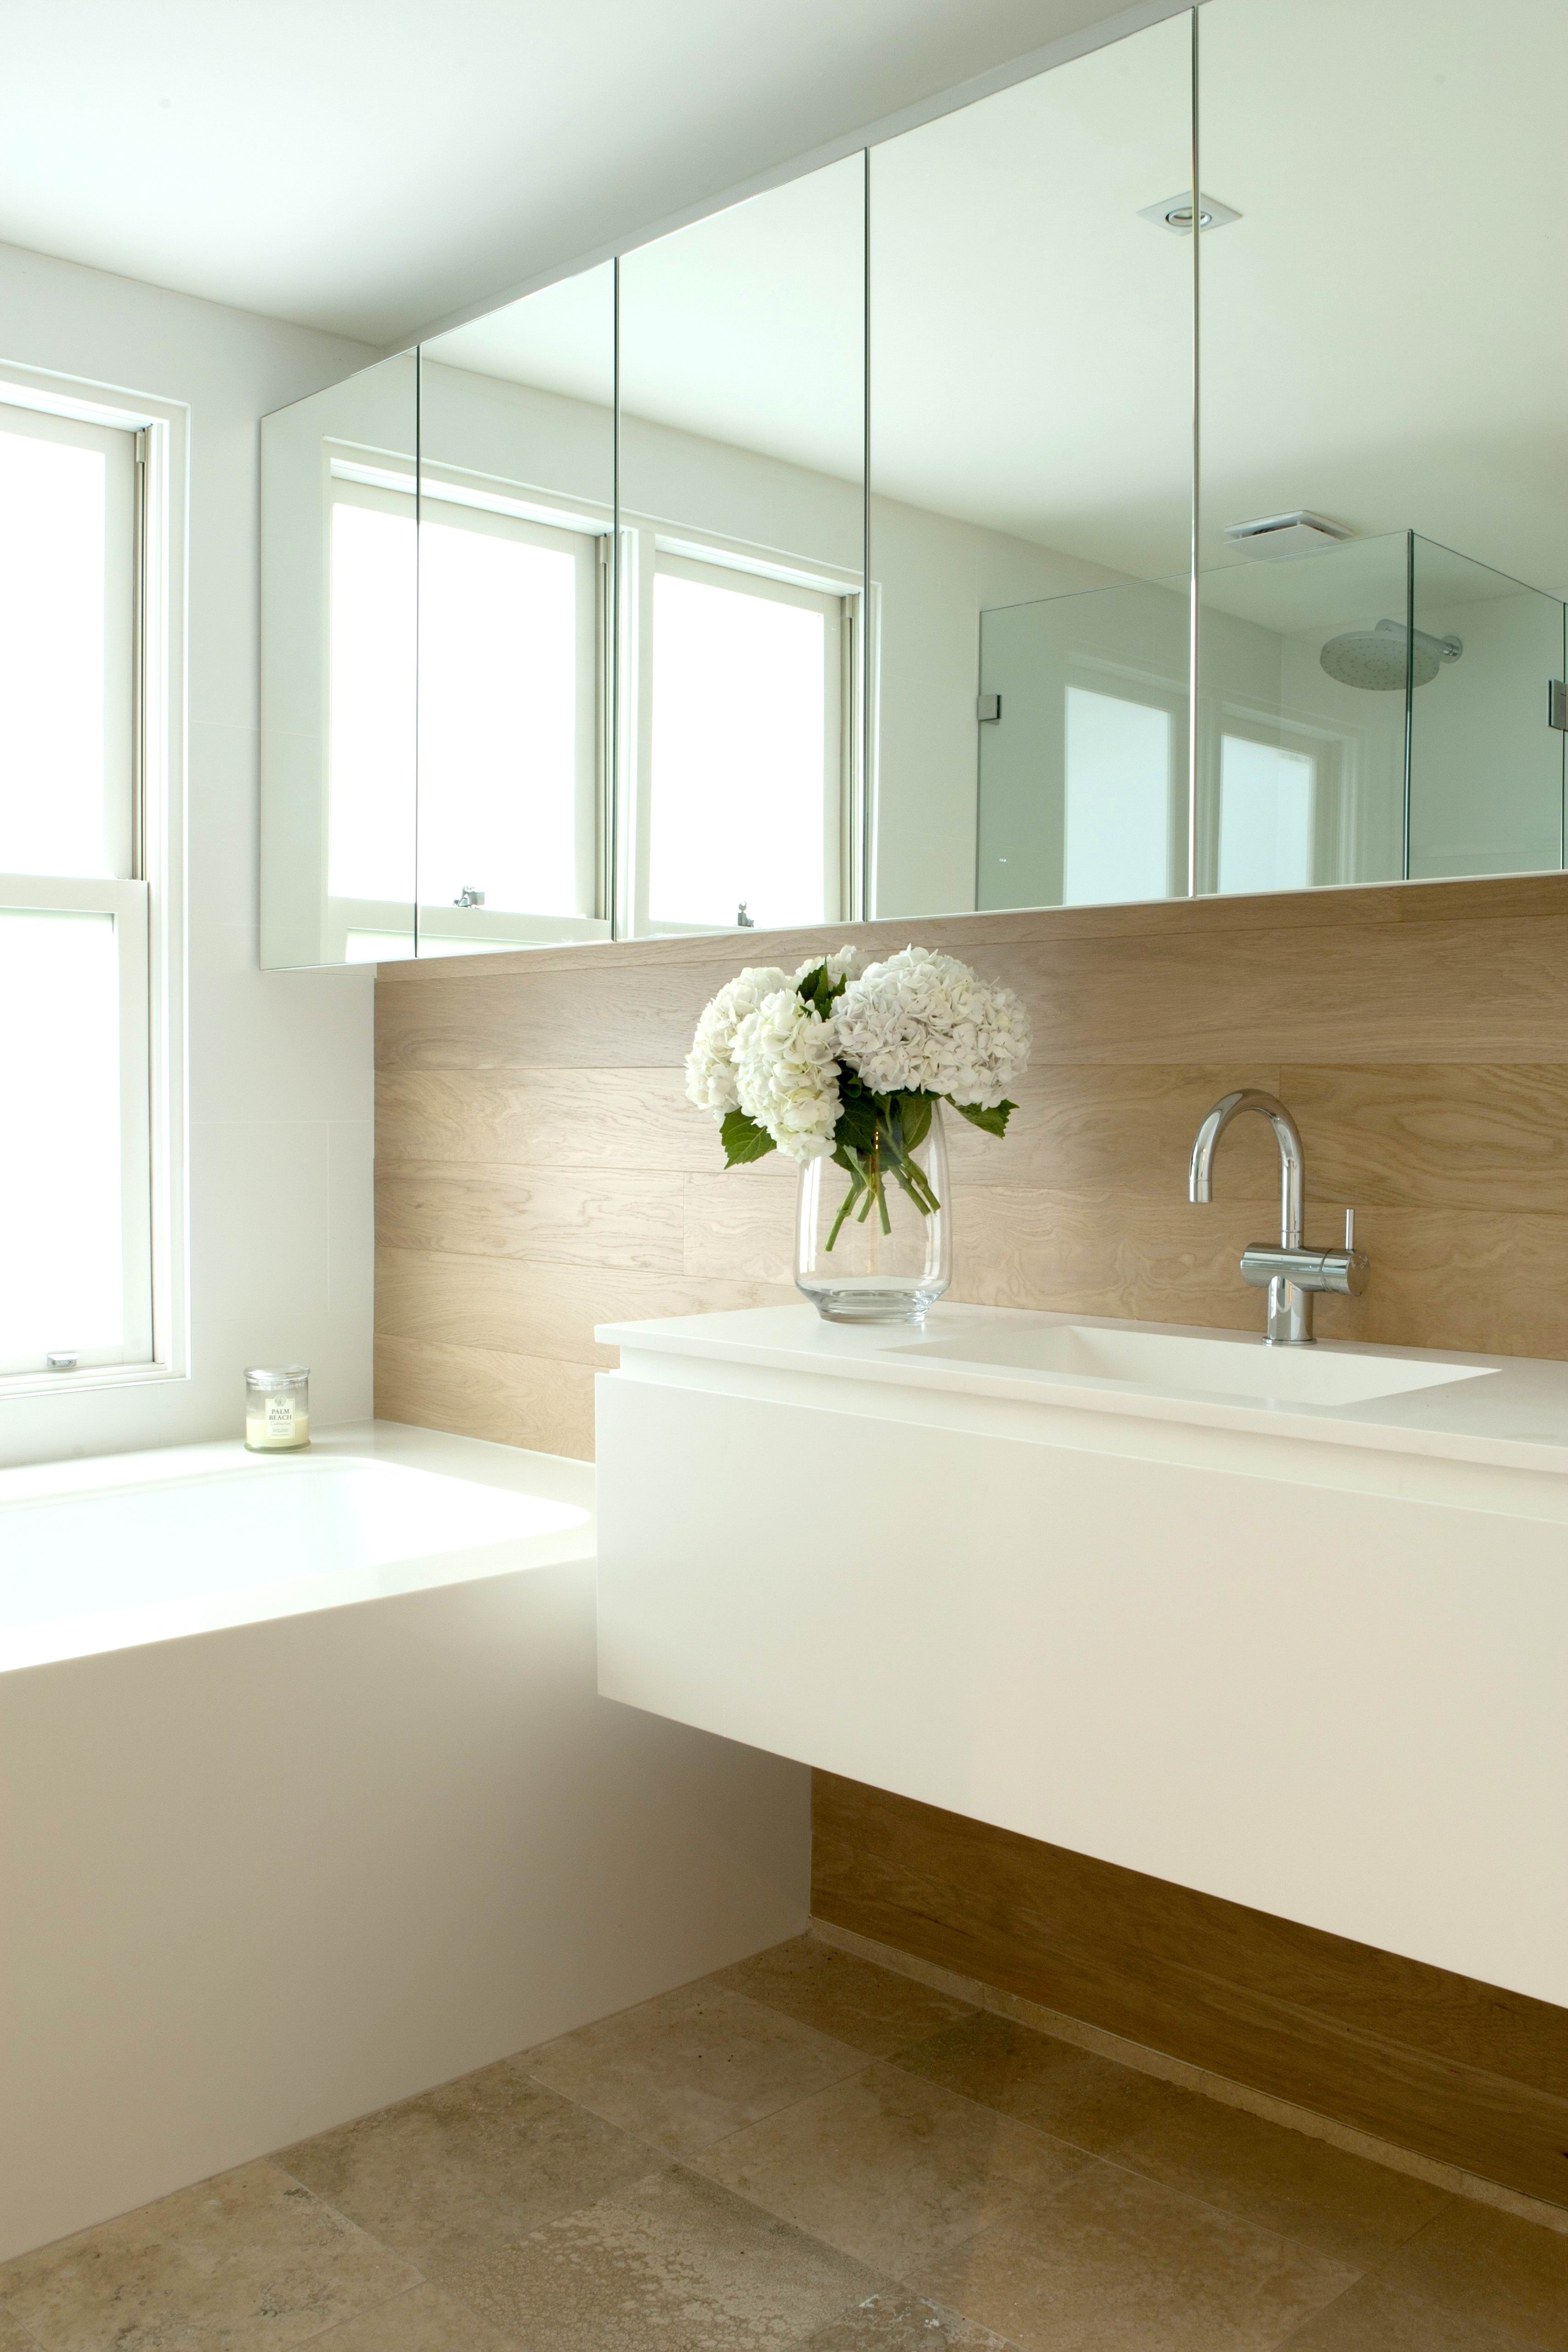 Badezimmer ideen klein grau main bathroom with corian clad bath and basin and timber panelling